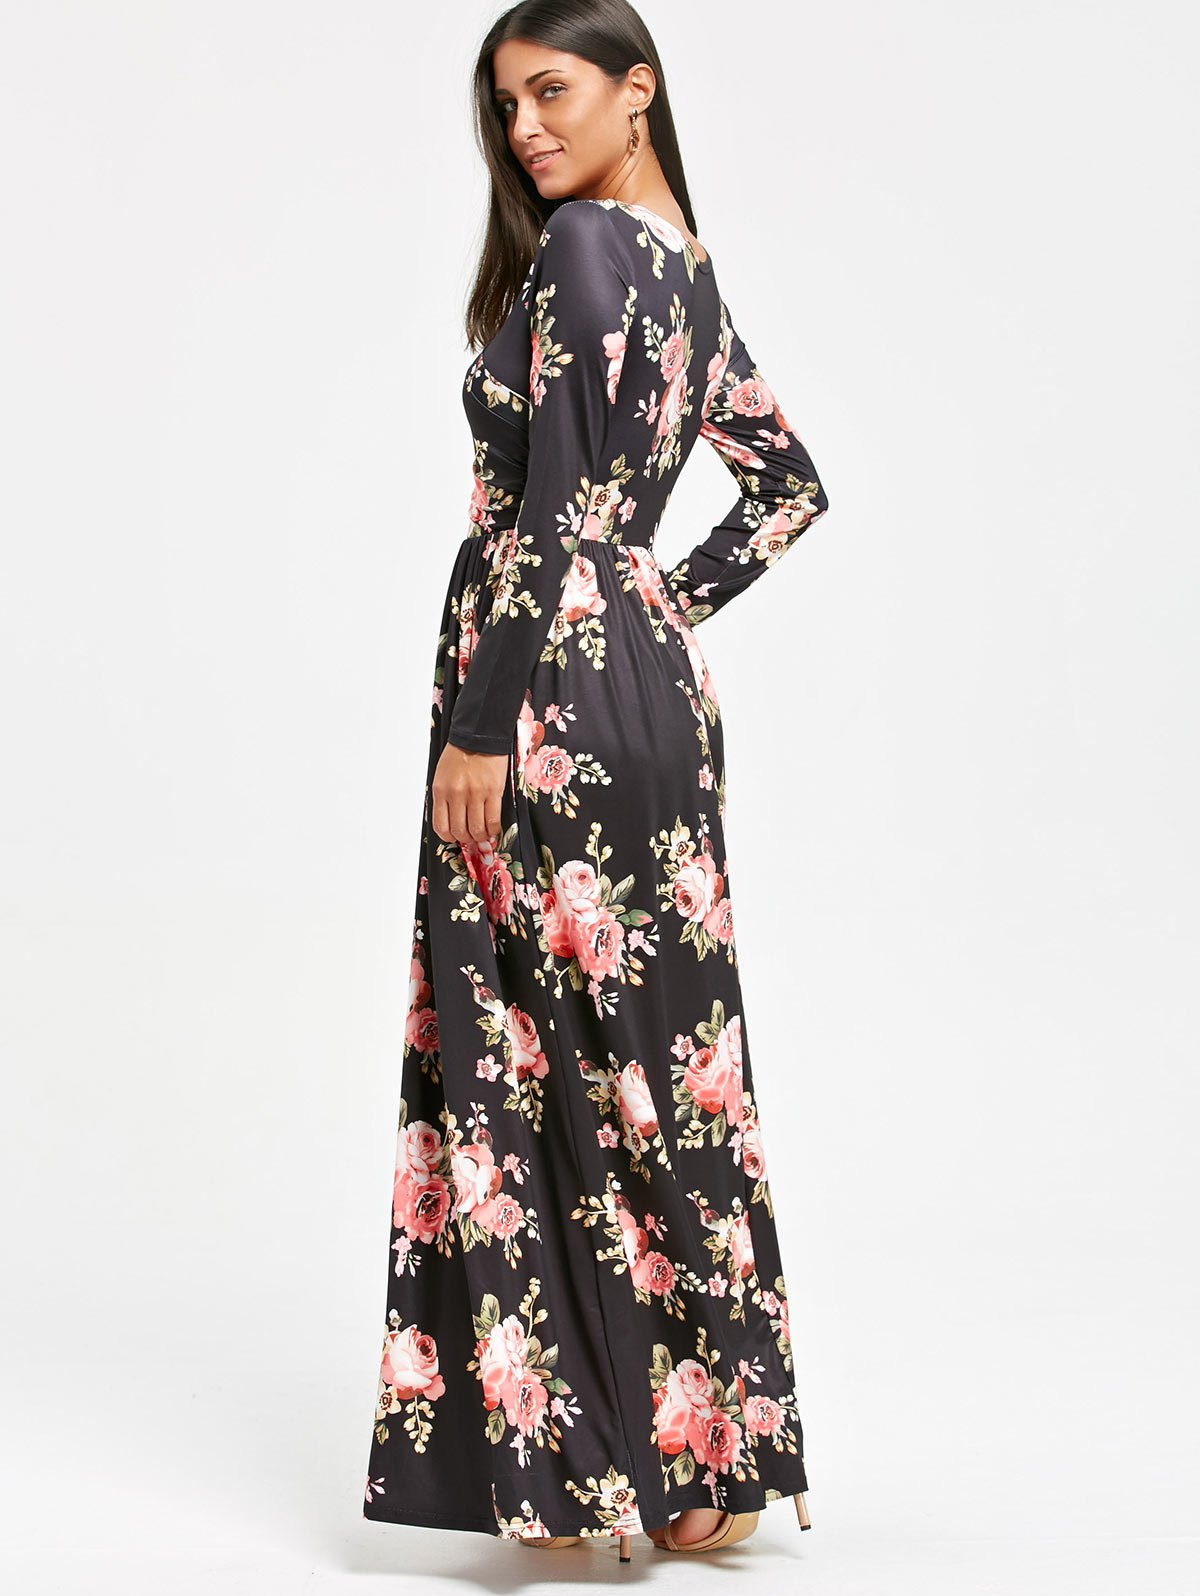 High Waist Floral Printed Long Sleeve Maxi Dress - BLACK S